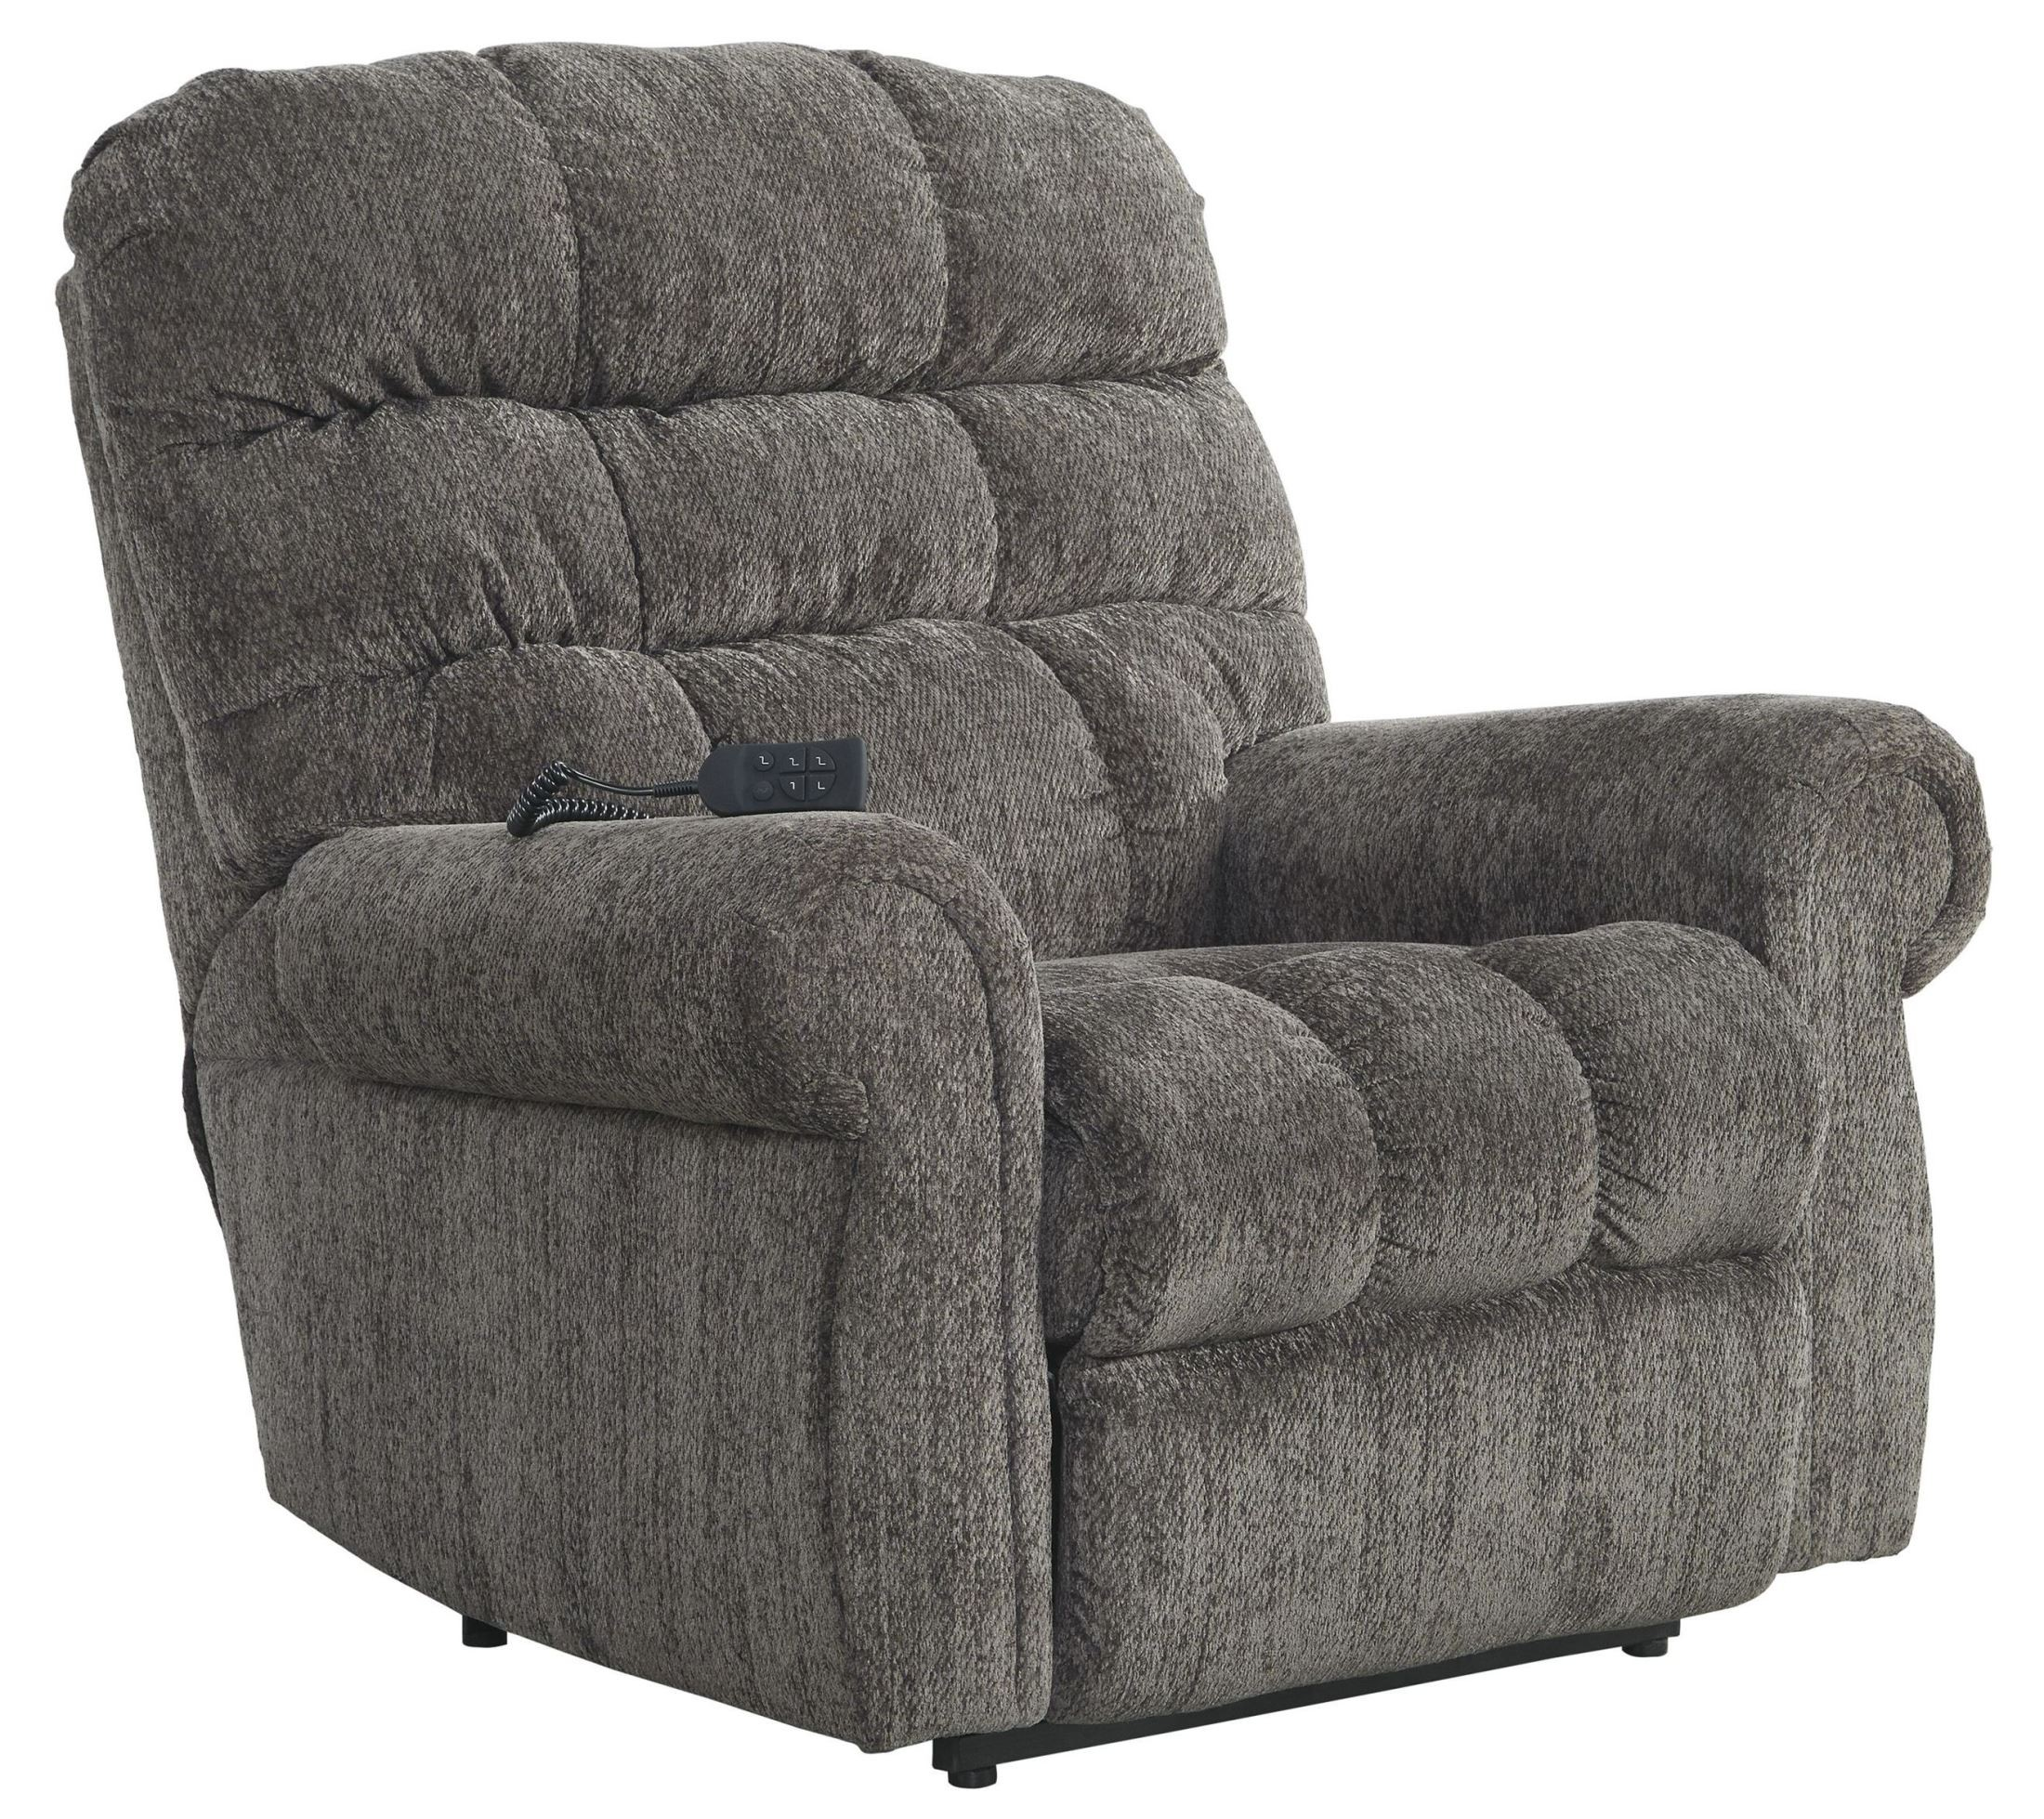 Furniture Store For Sale: Ernestine Slate Power Lift Recliner From Ashley (9760112